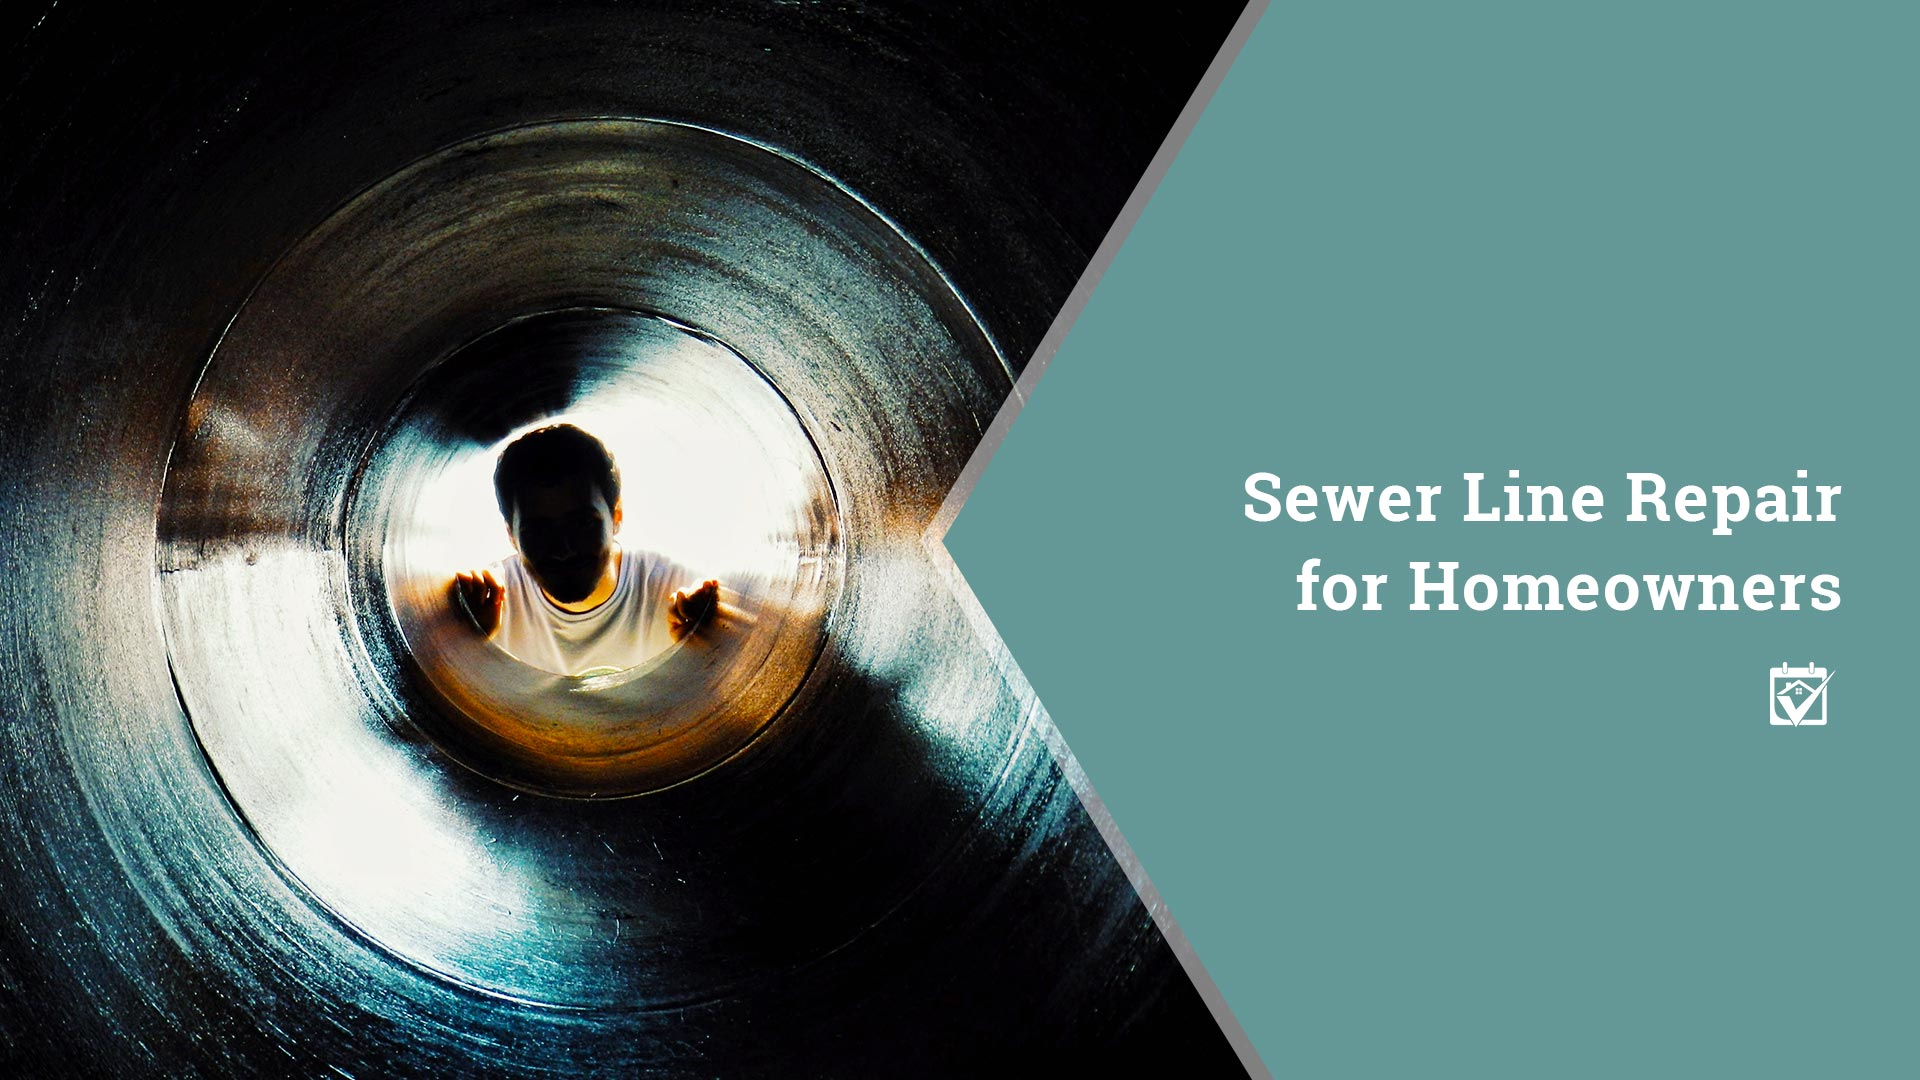 sewer-line-repairs-homeowners.jpg